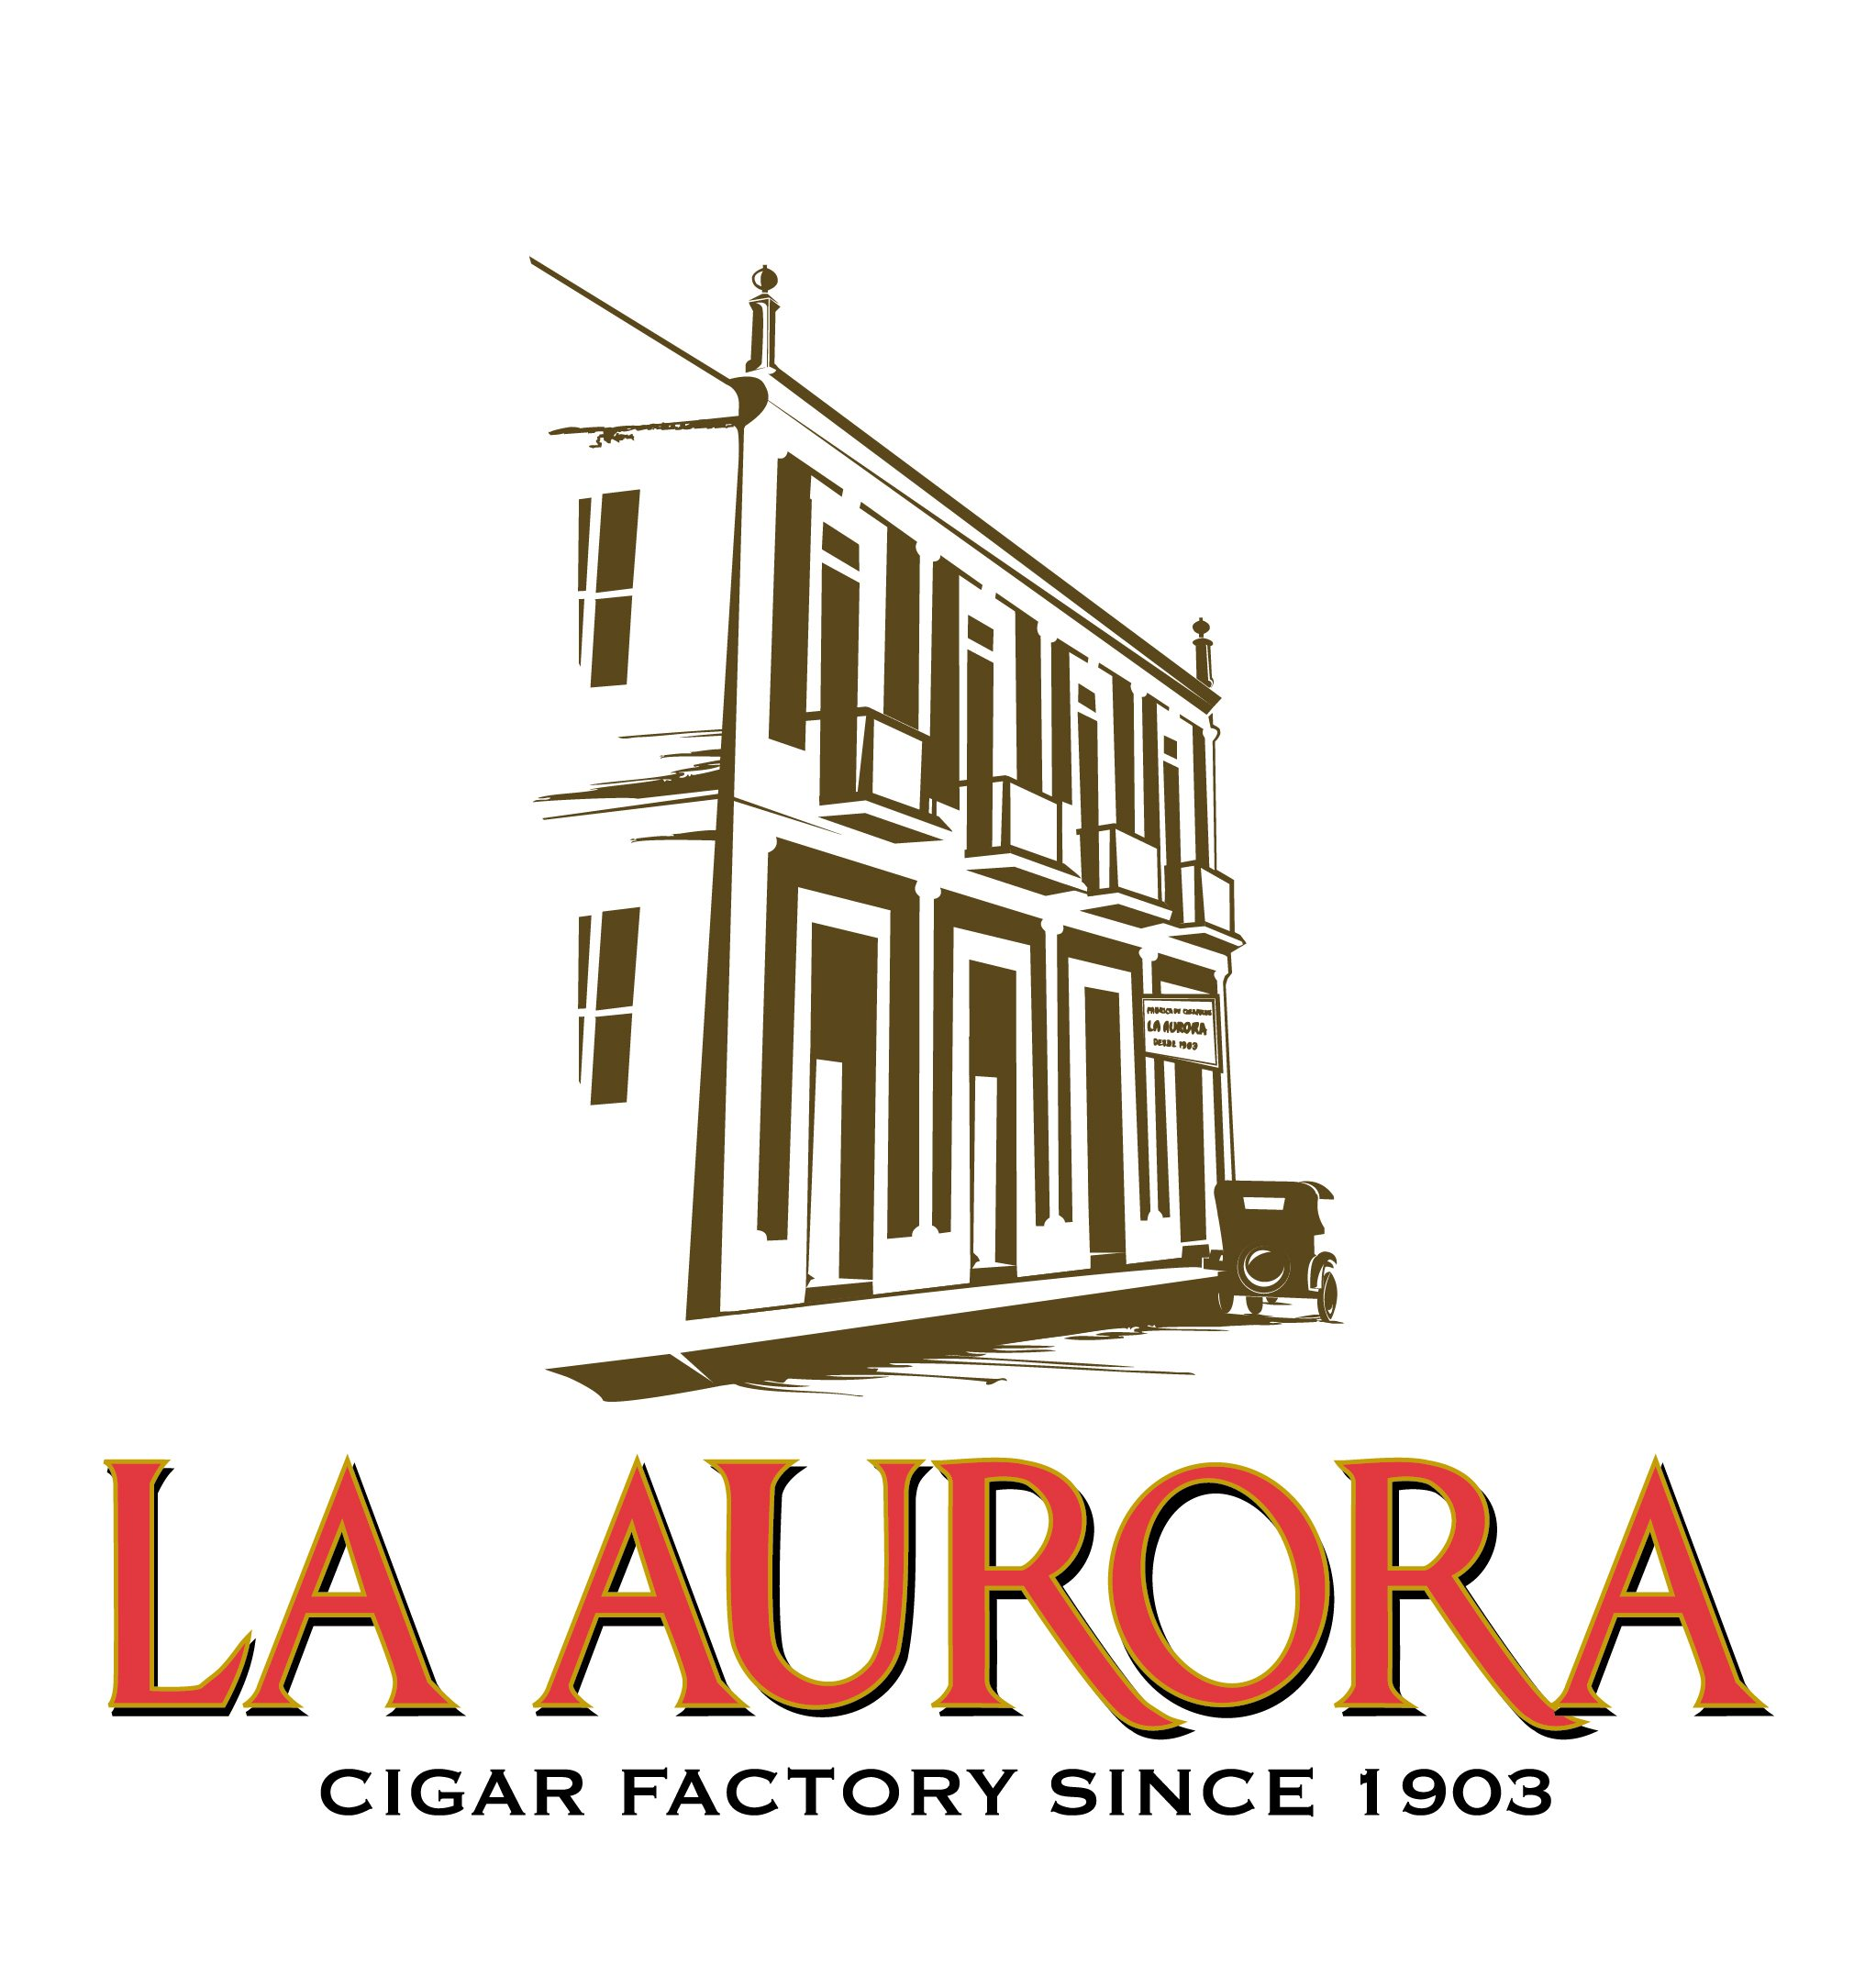 """Cigar News: La Aurora Celebrates 111th Anniversary with """"Become part of the family"""" Campaign"""